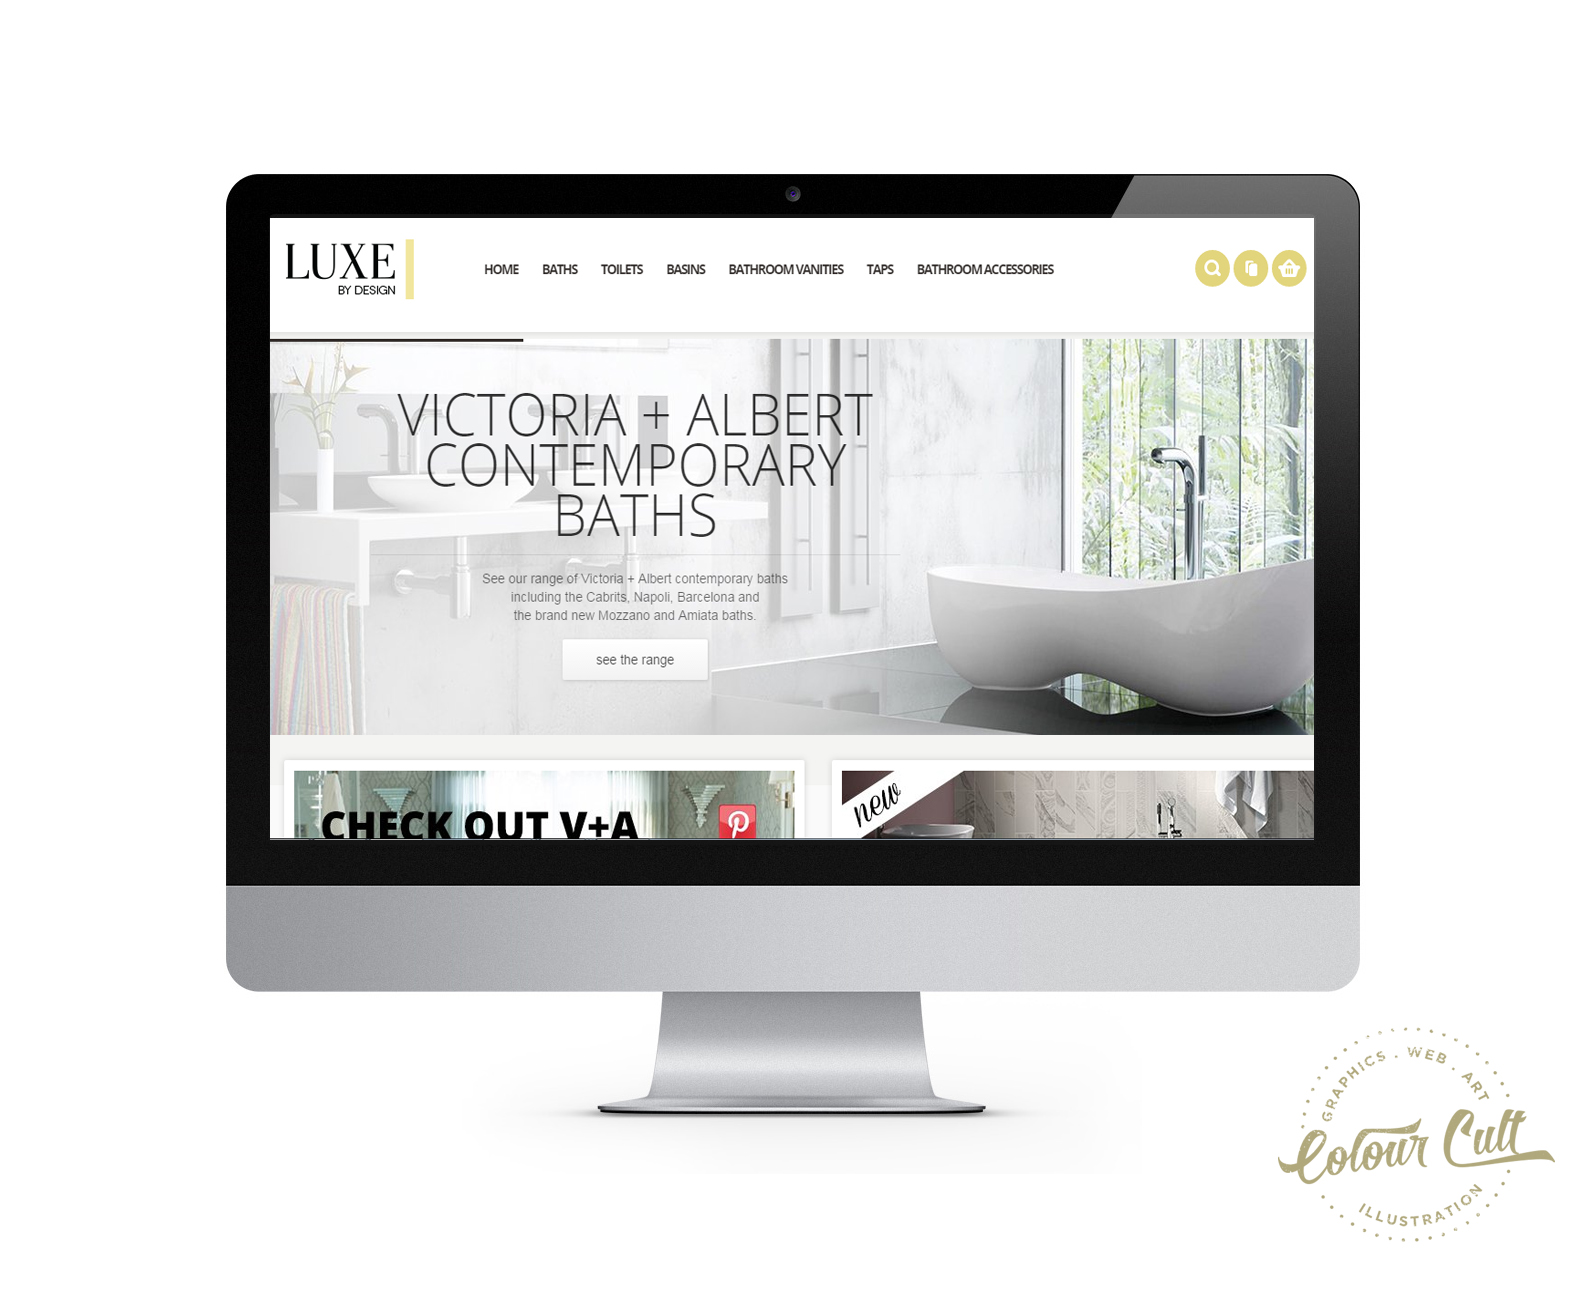 Luxe by Design magento website by Colour Cult, Brisbane.